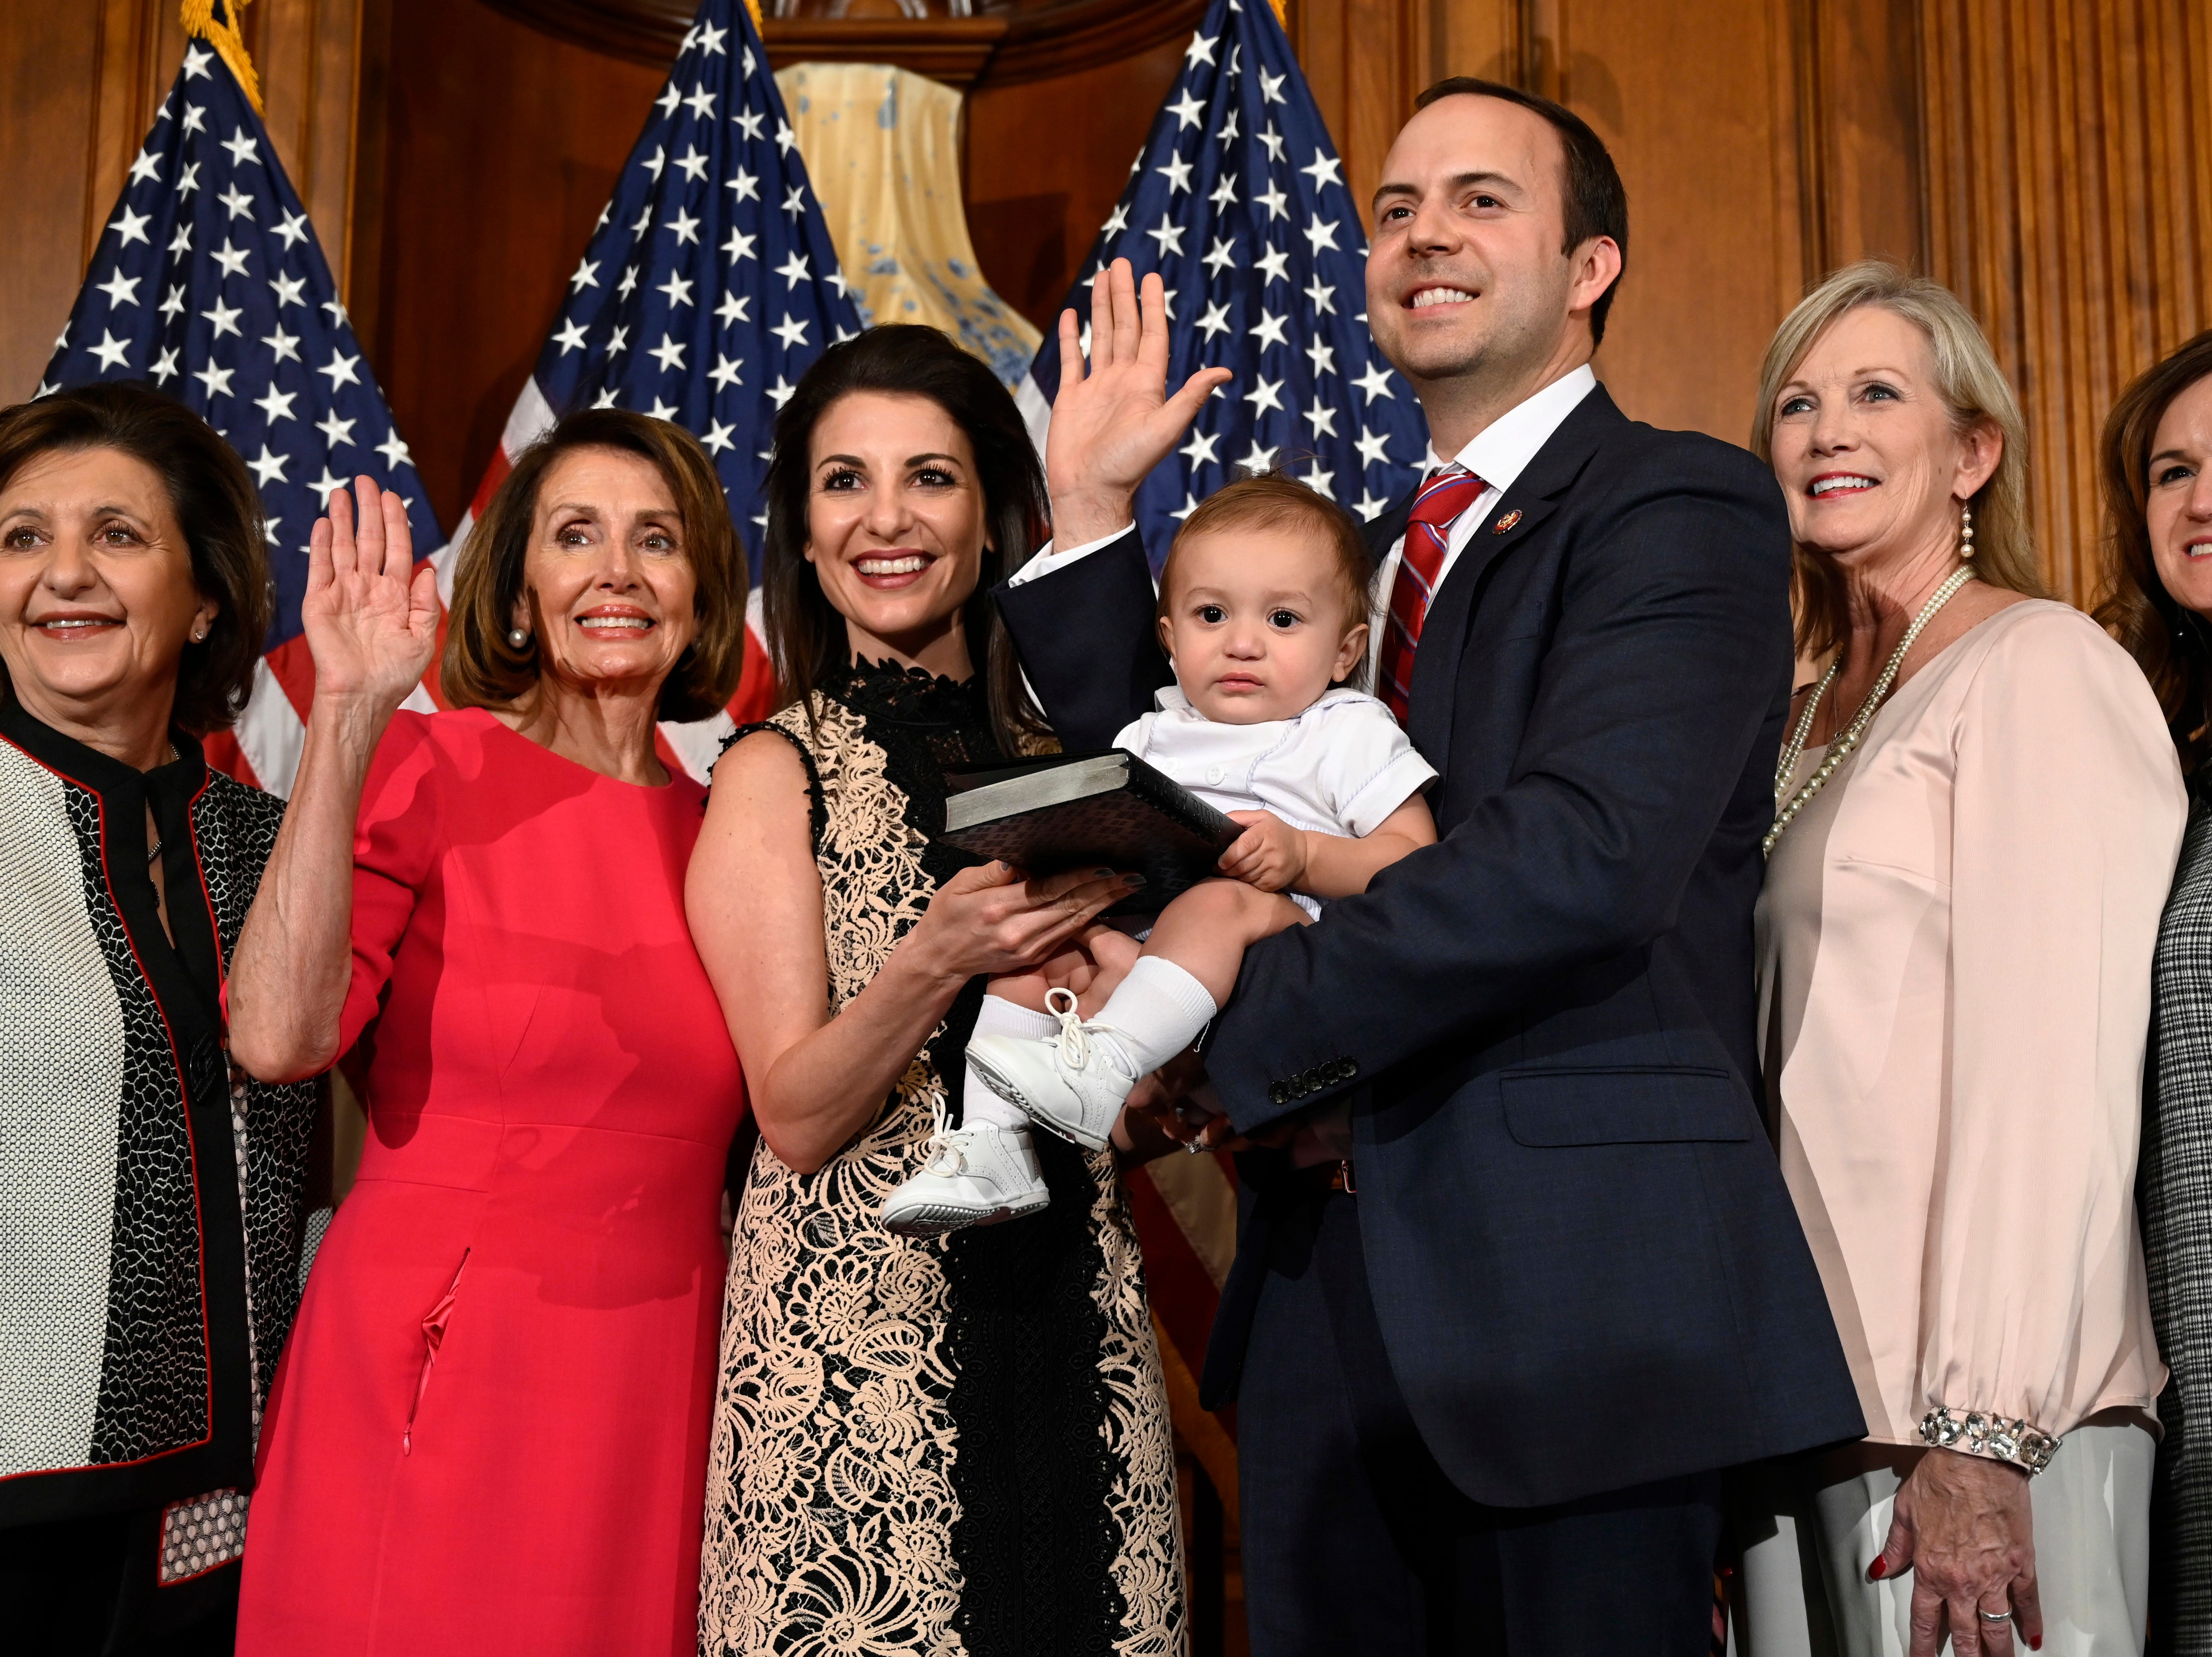 House Speaker Nancy Pelosi of Calif., second from left, poses during a ceremonial swearing-in with Rep. Lance Gooden, R-Texas, third from right, on Capitol Hill in Washington, Thursday, Jan. 3, 2019, during the opening session of the 116th Congress. (AP Photo/Susan Walsh)